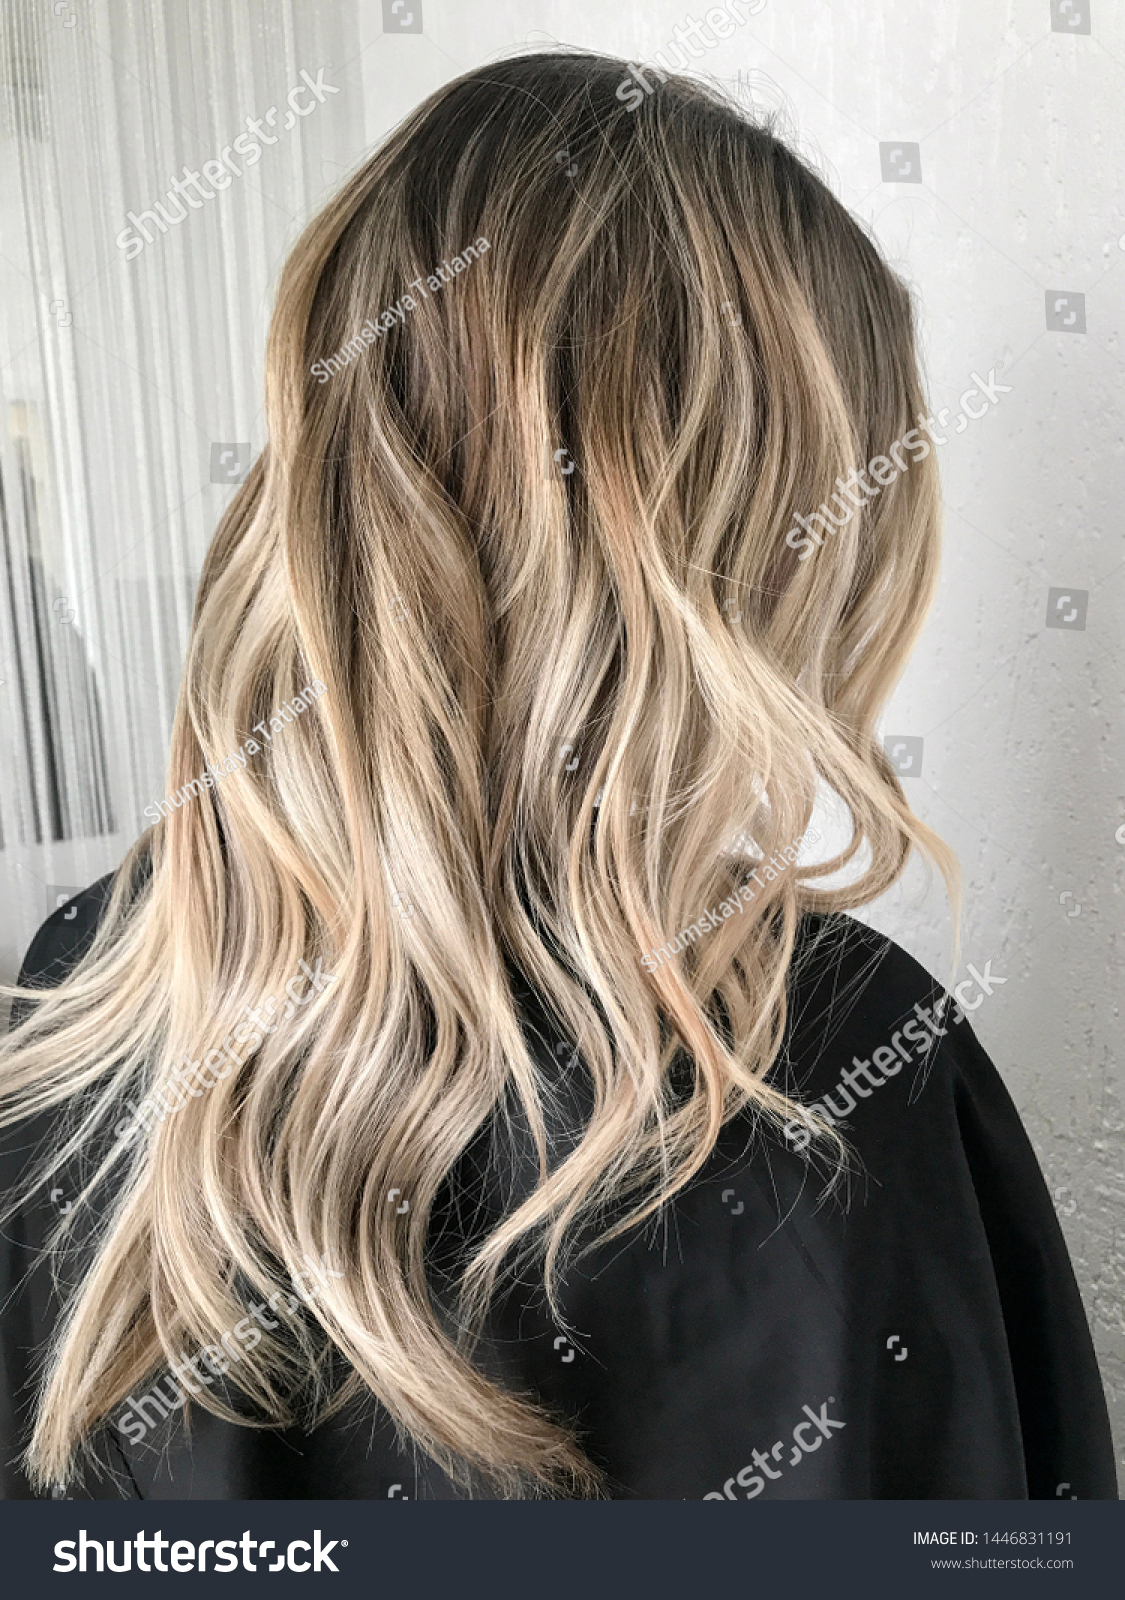 Hairstyle Ombre Color Highlight Hair Stock Photo (Edit Now ...